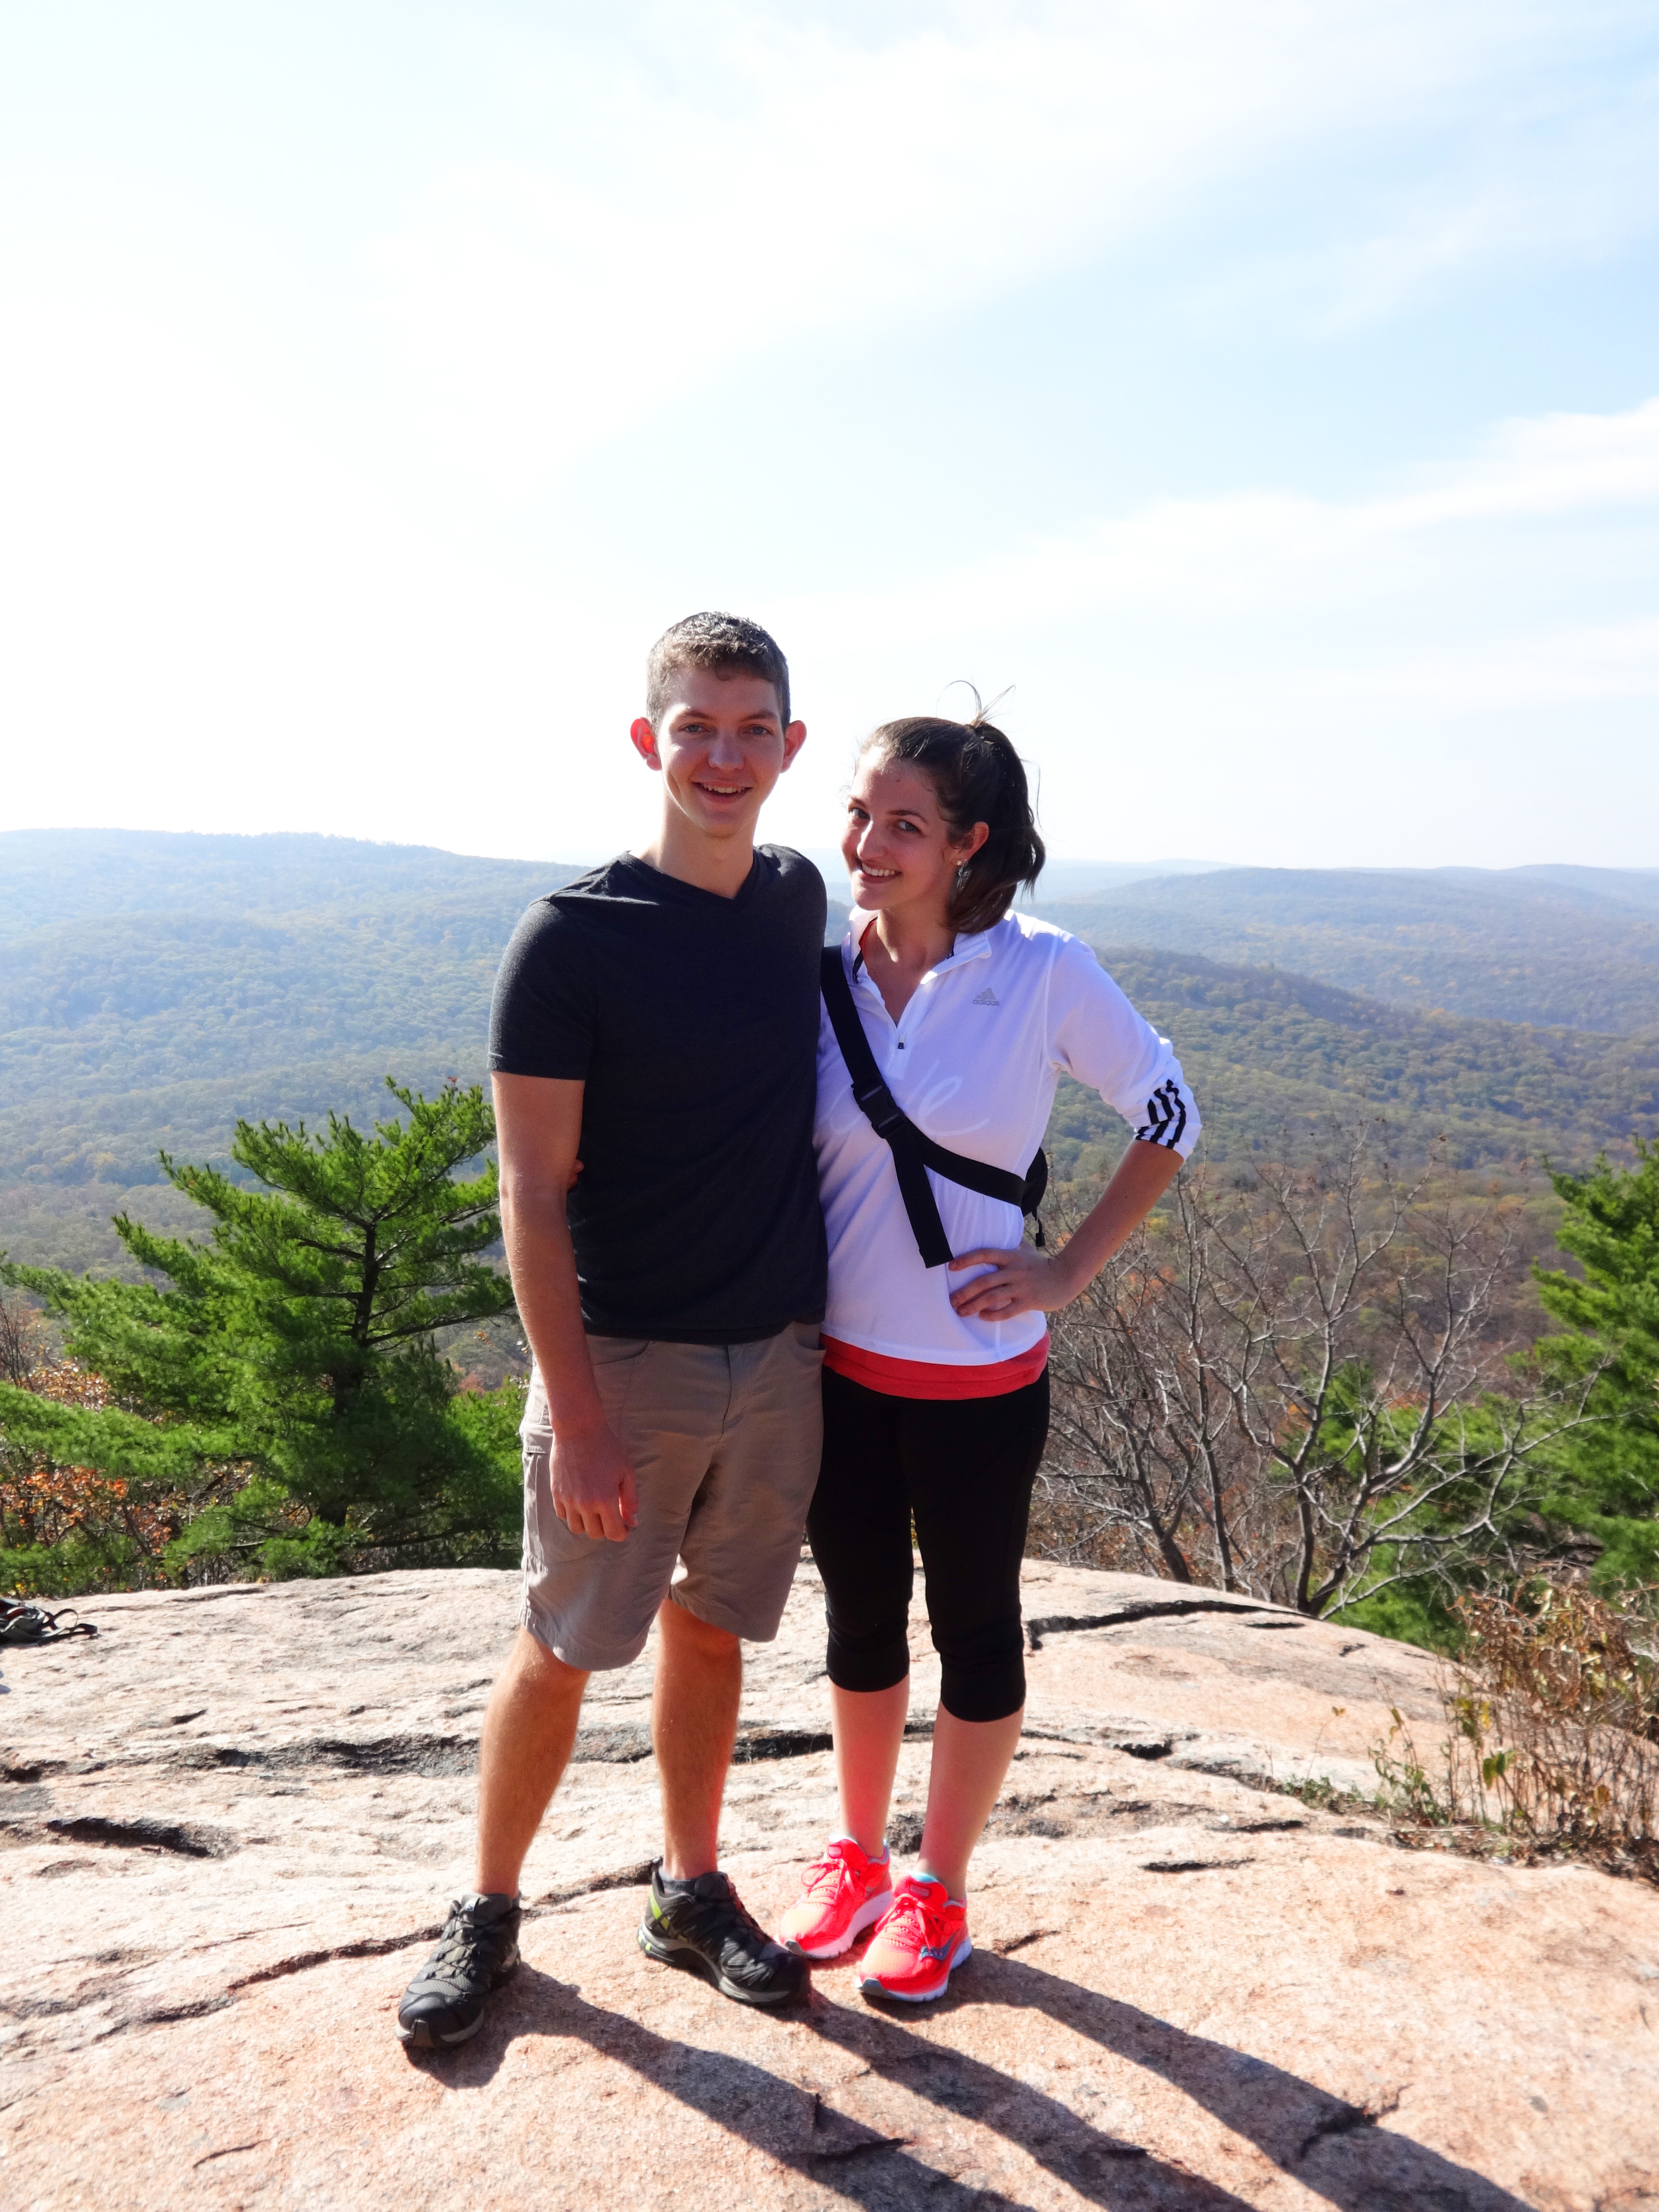 We made it all the way to the top of Bear Mountain!